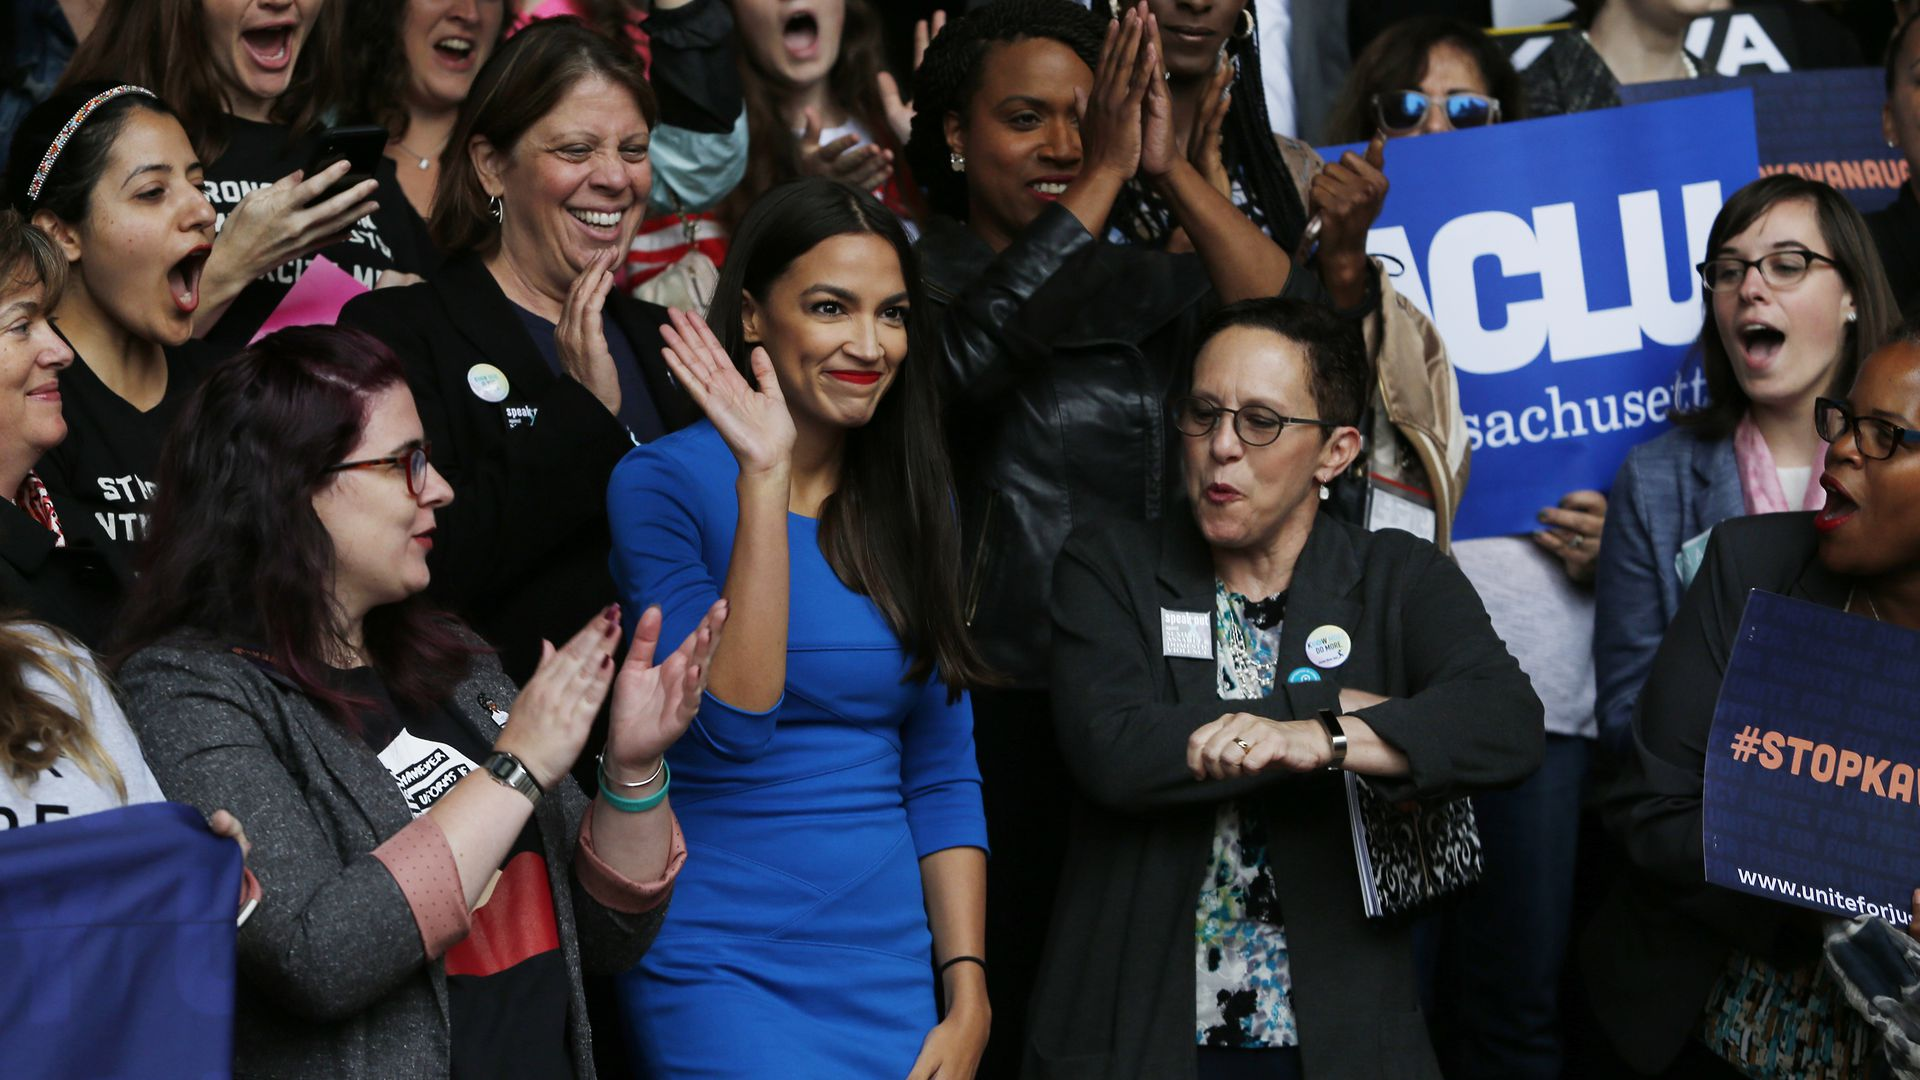 Alexandria Ocasio-Cortez waves in the midst of a crowd wearing a bright blue dress.